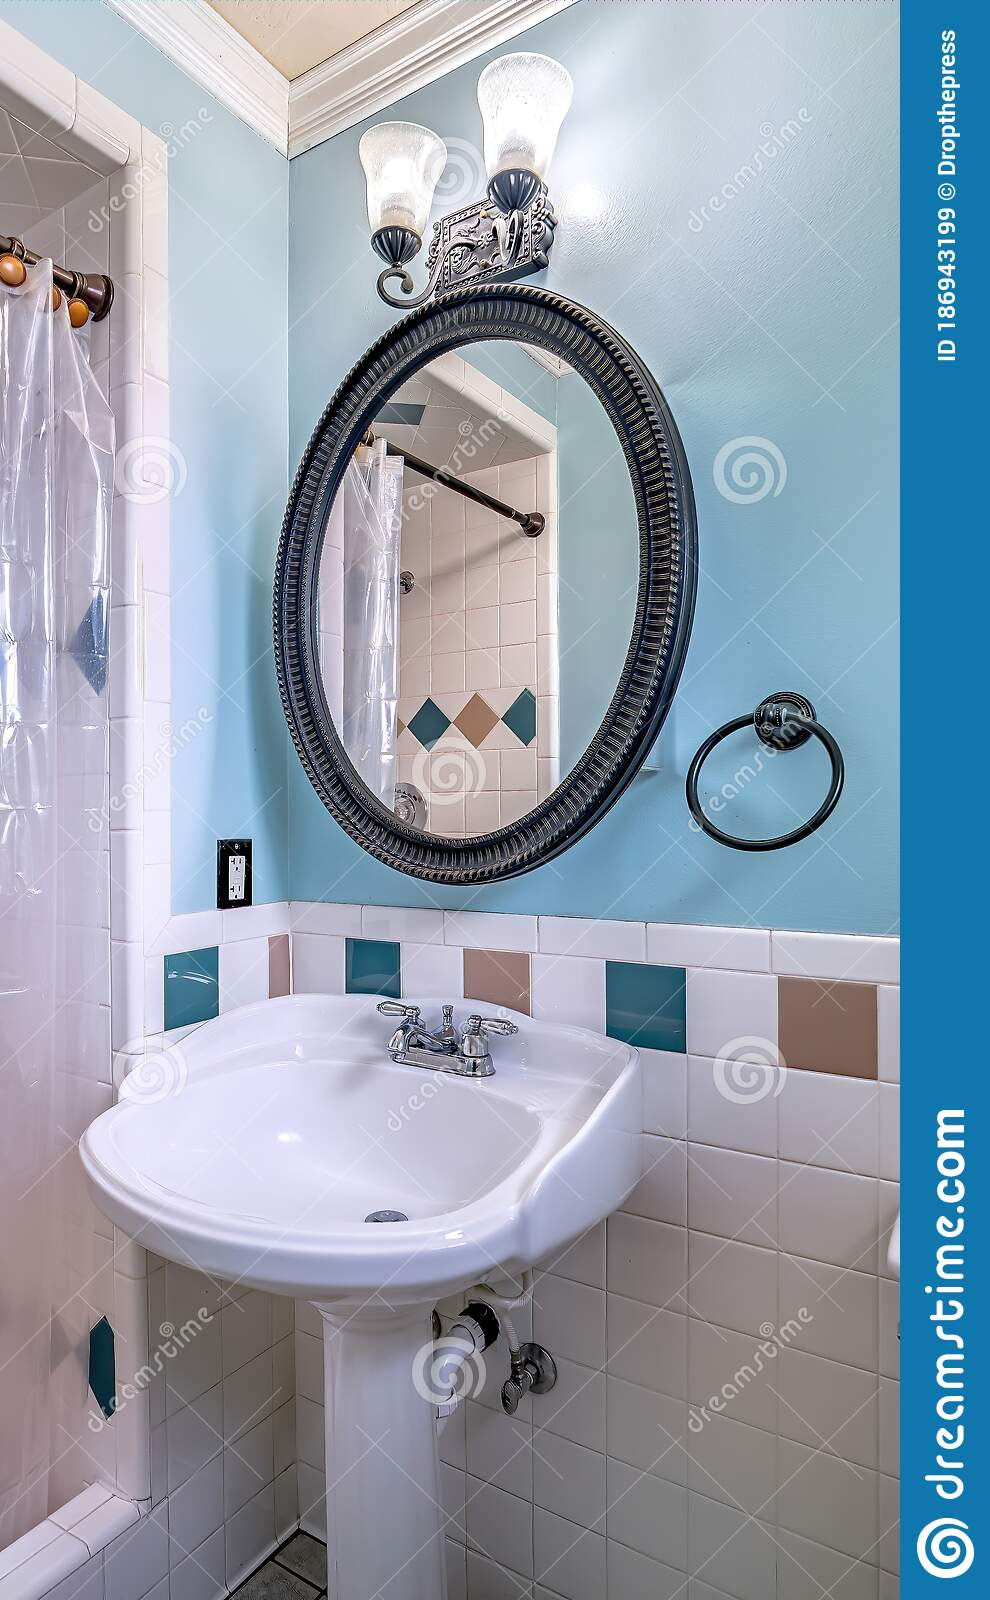 vertical frame free standing sink toilet and shower area with plastic curtain inside bathroom stock image image of tile lamp 186943199